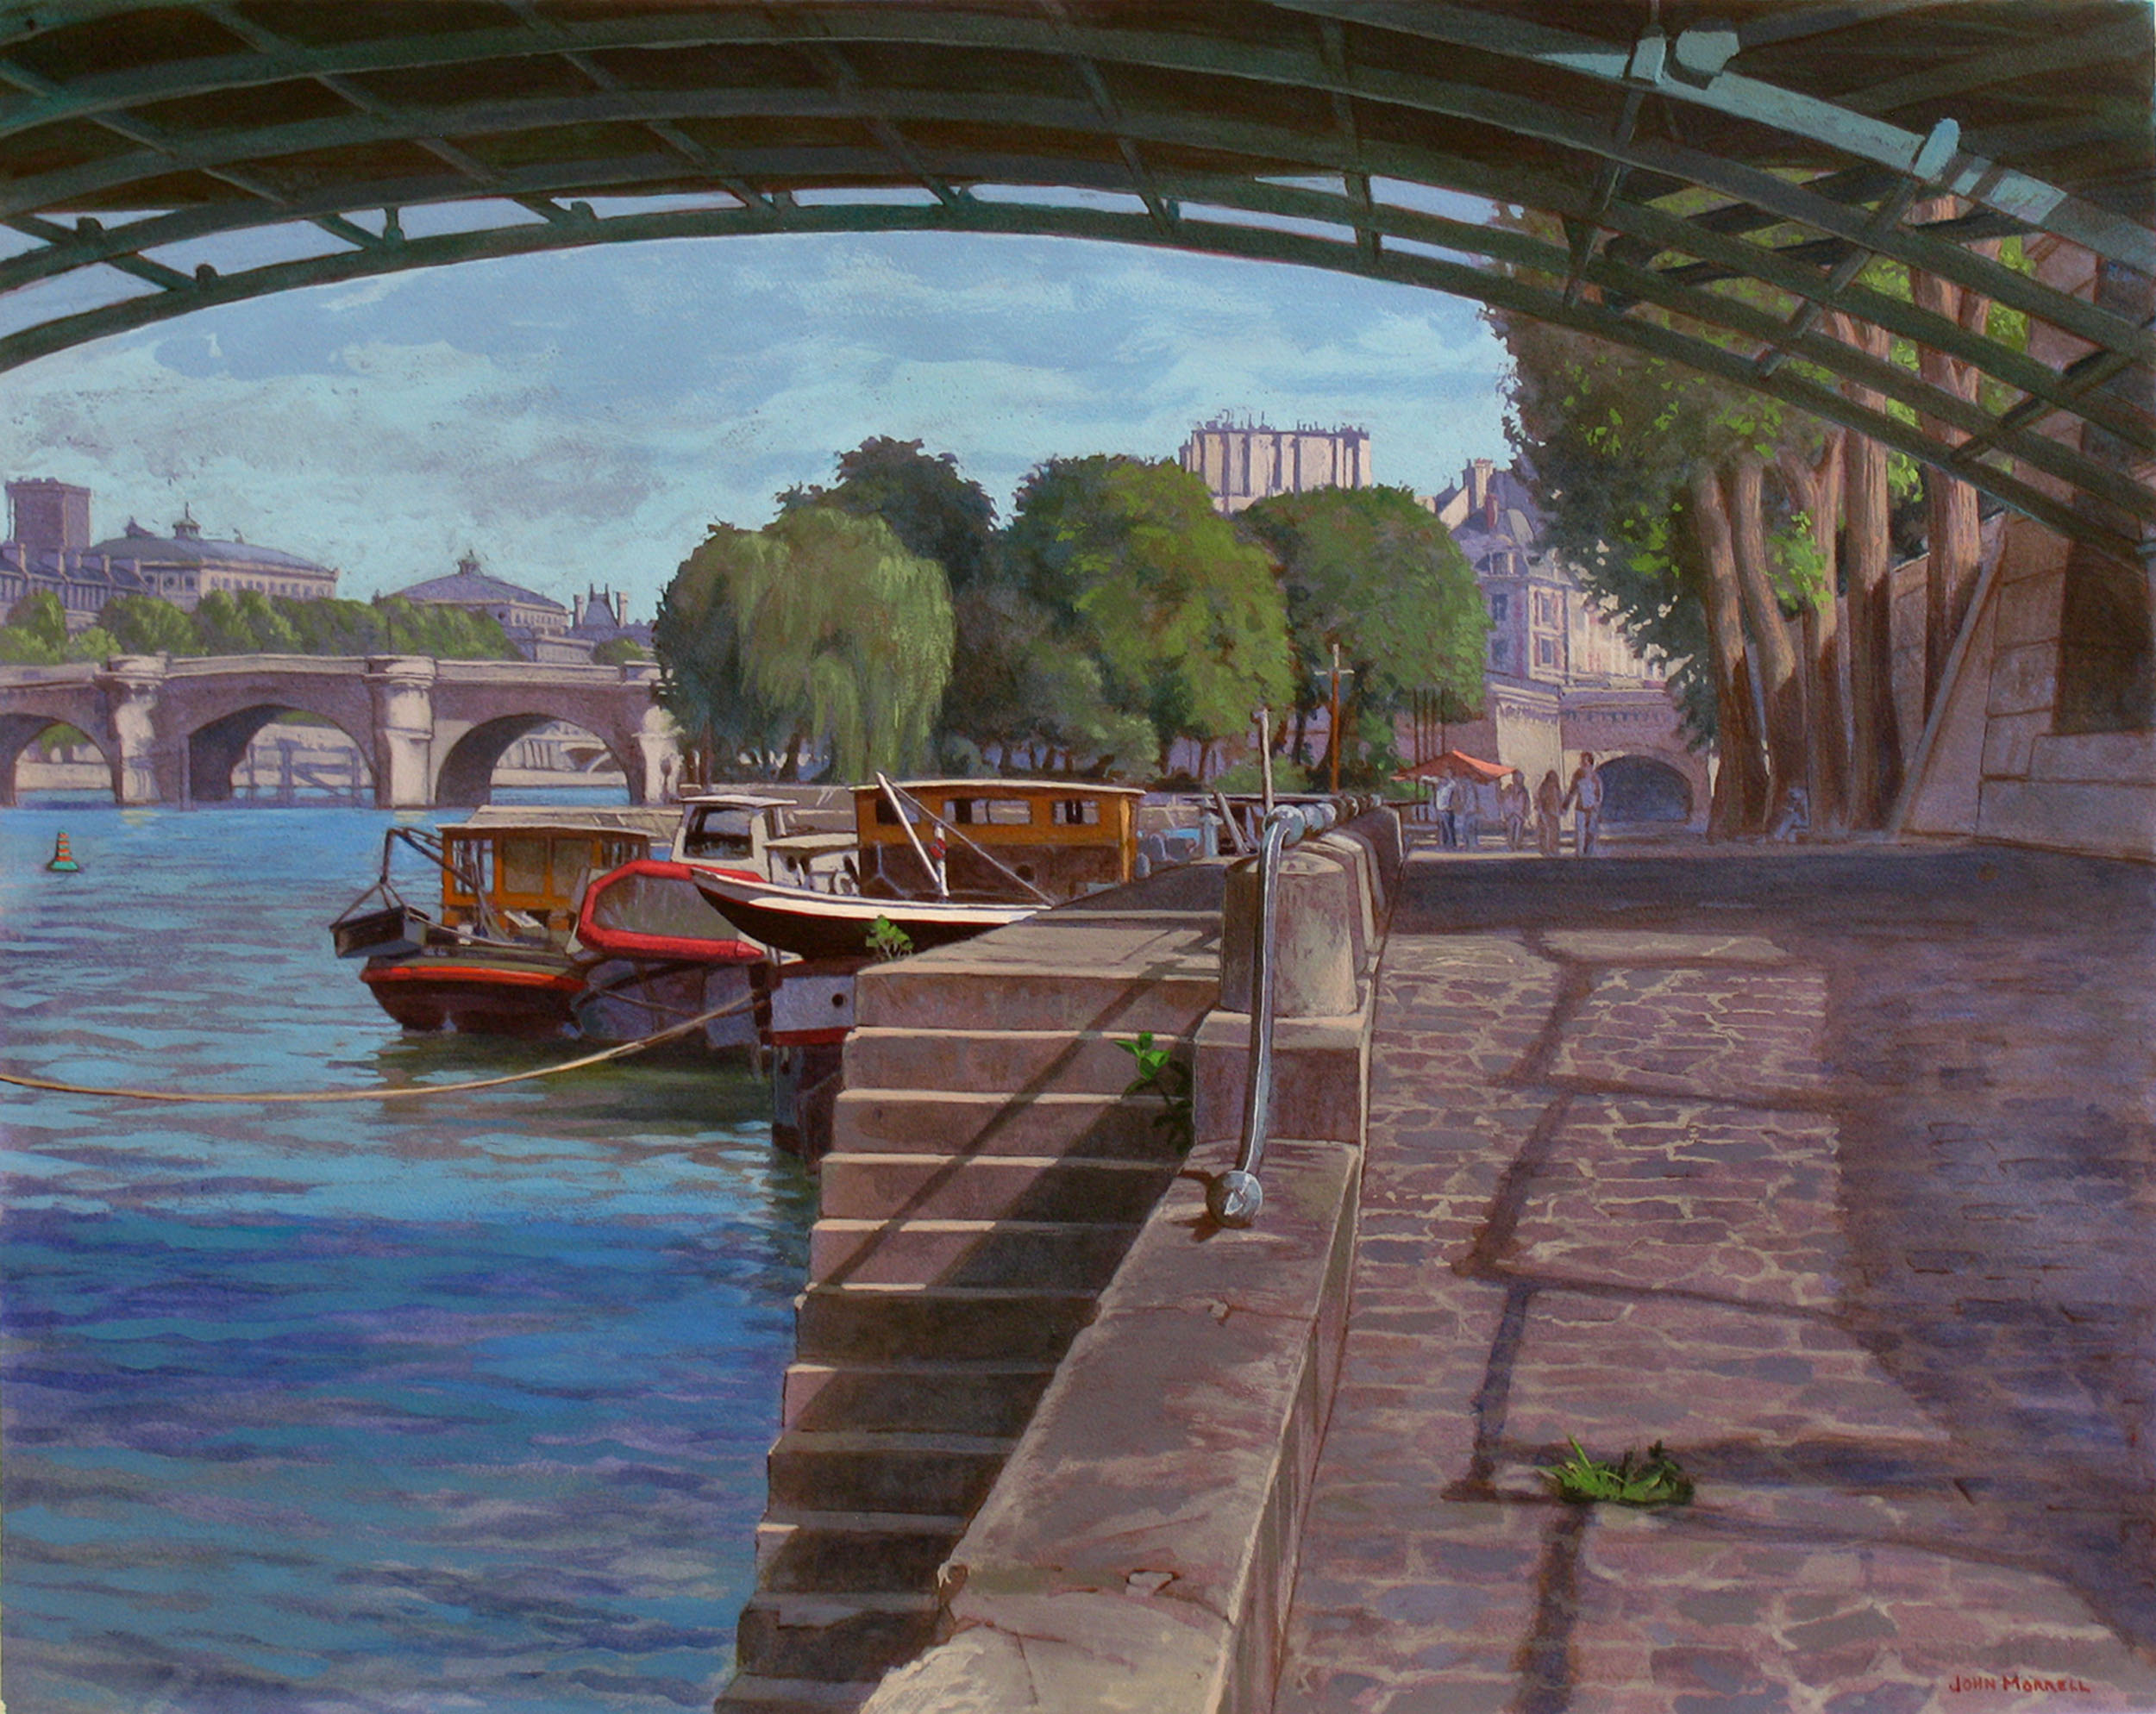 Under Le Pont Des Arts